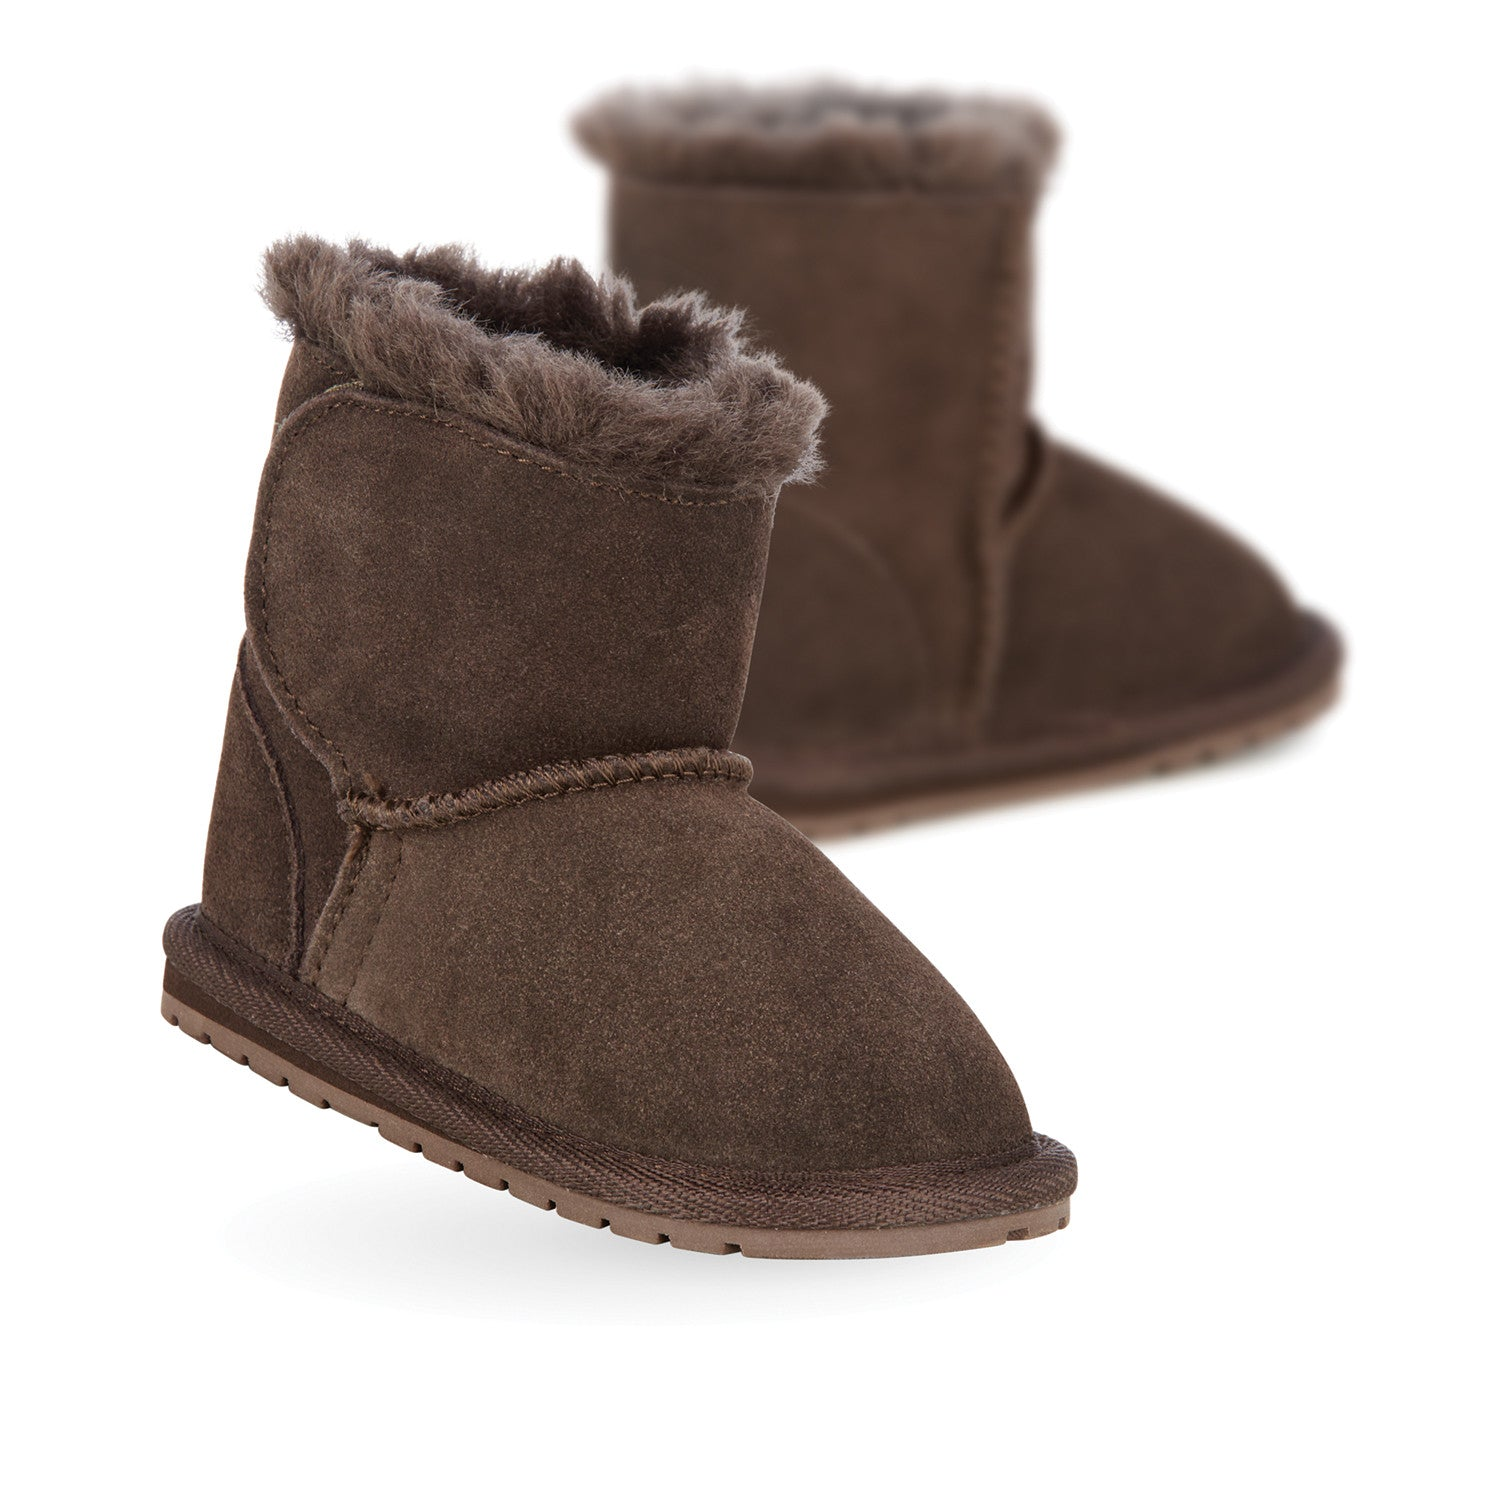 FW EMU TODDLES SHEEPSKIN SIZES 6-24 MONTH FIRST WALKERS